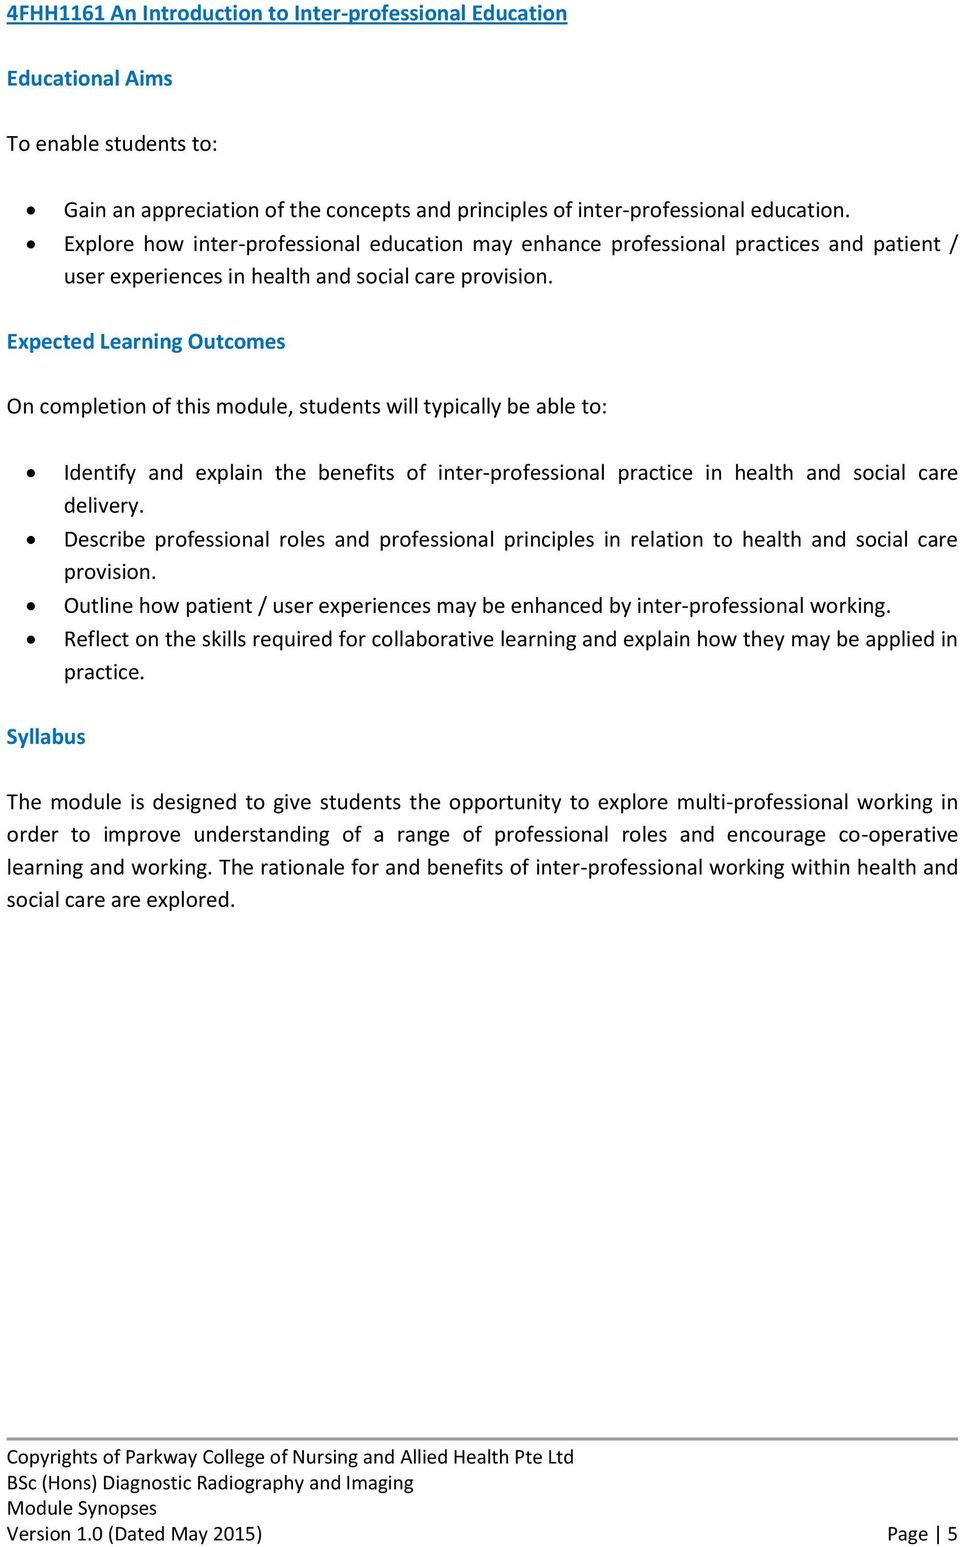 Identify and explain the benefits of inter-professional practice in health and social care delivery.